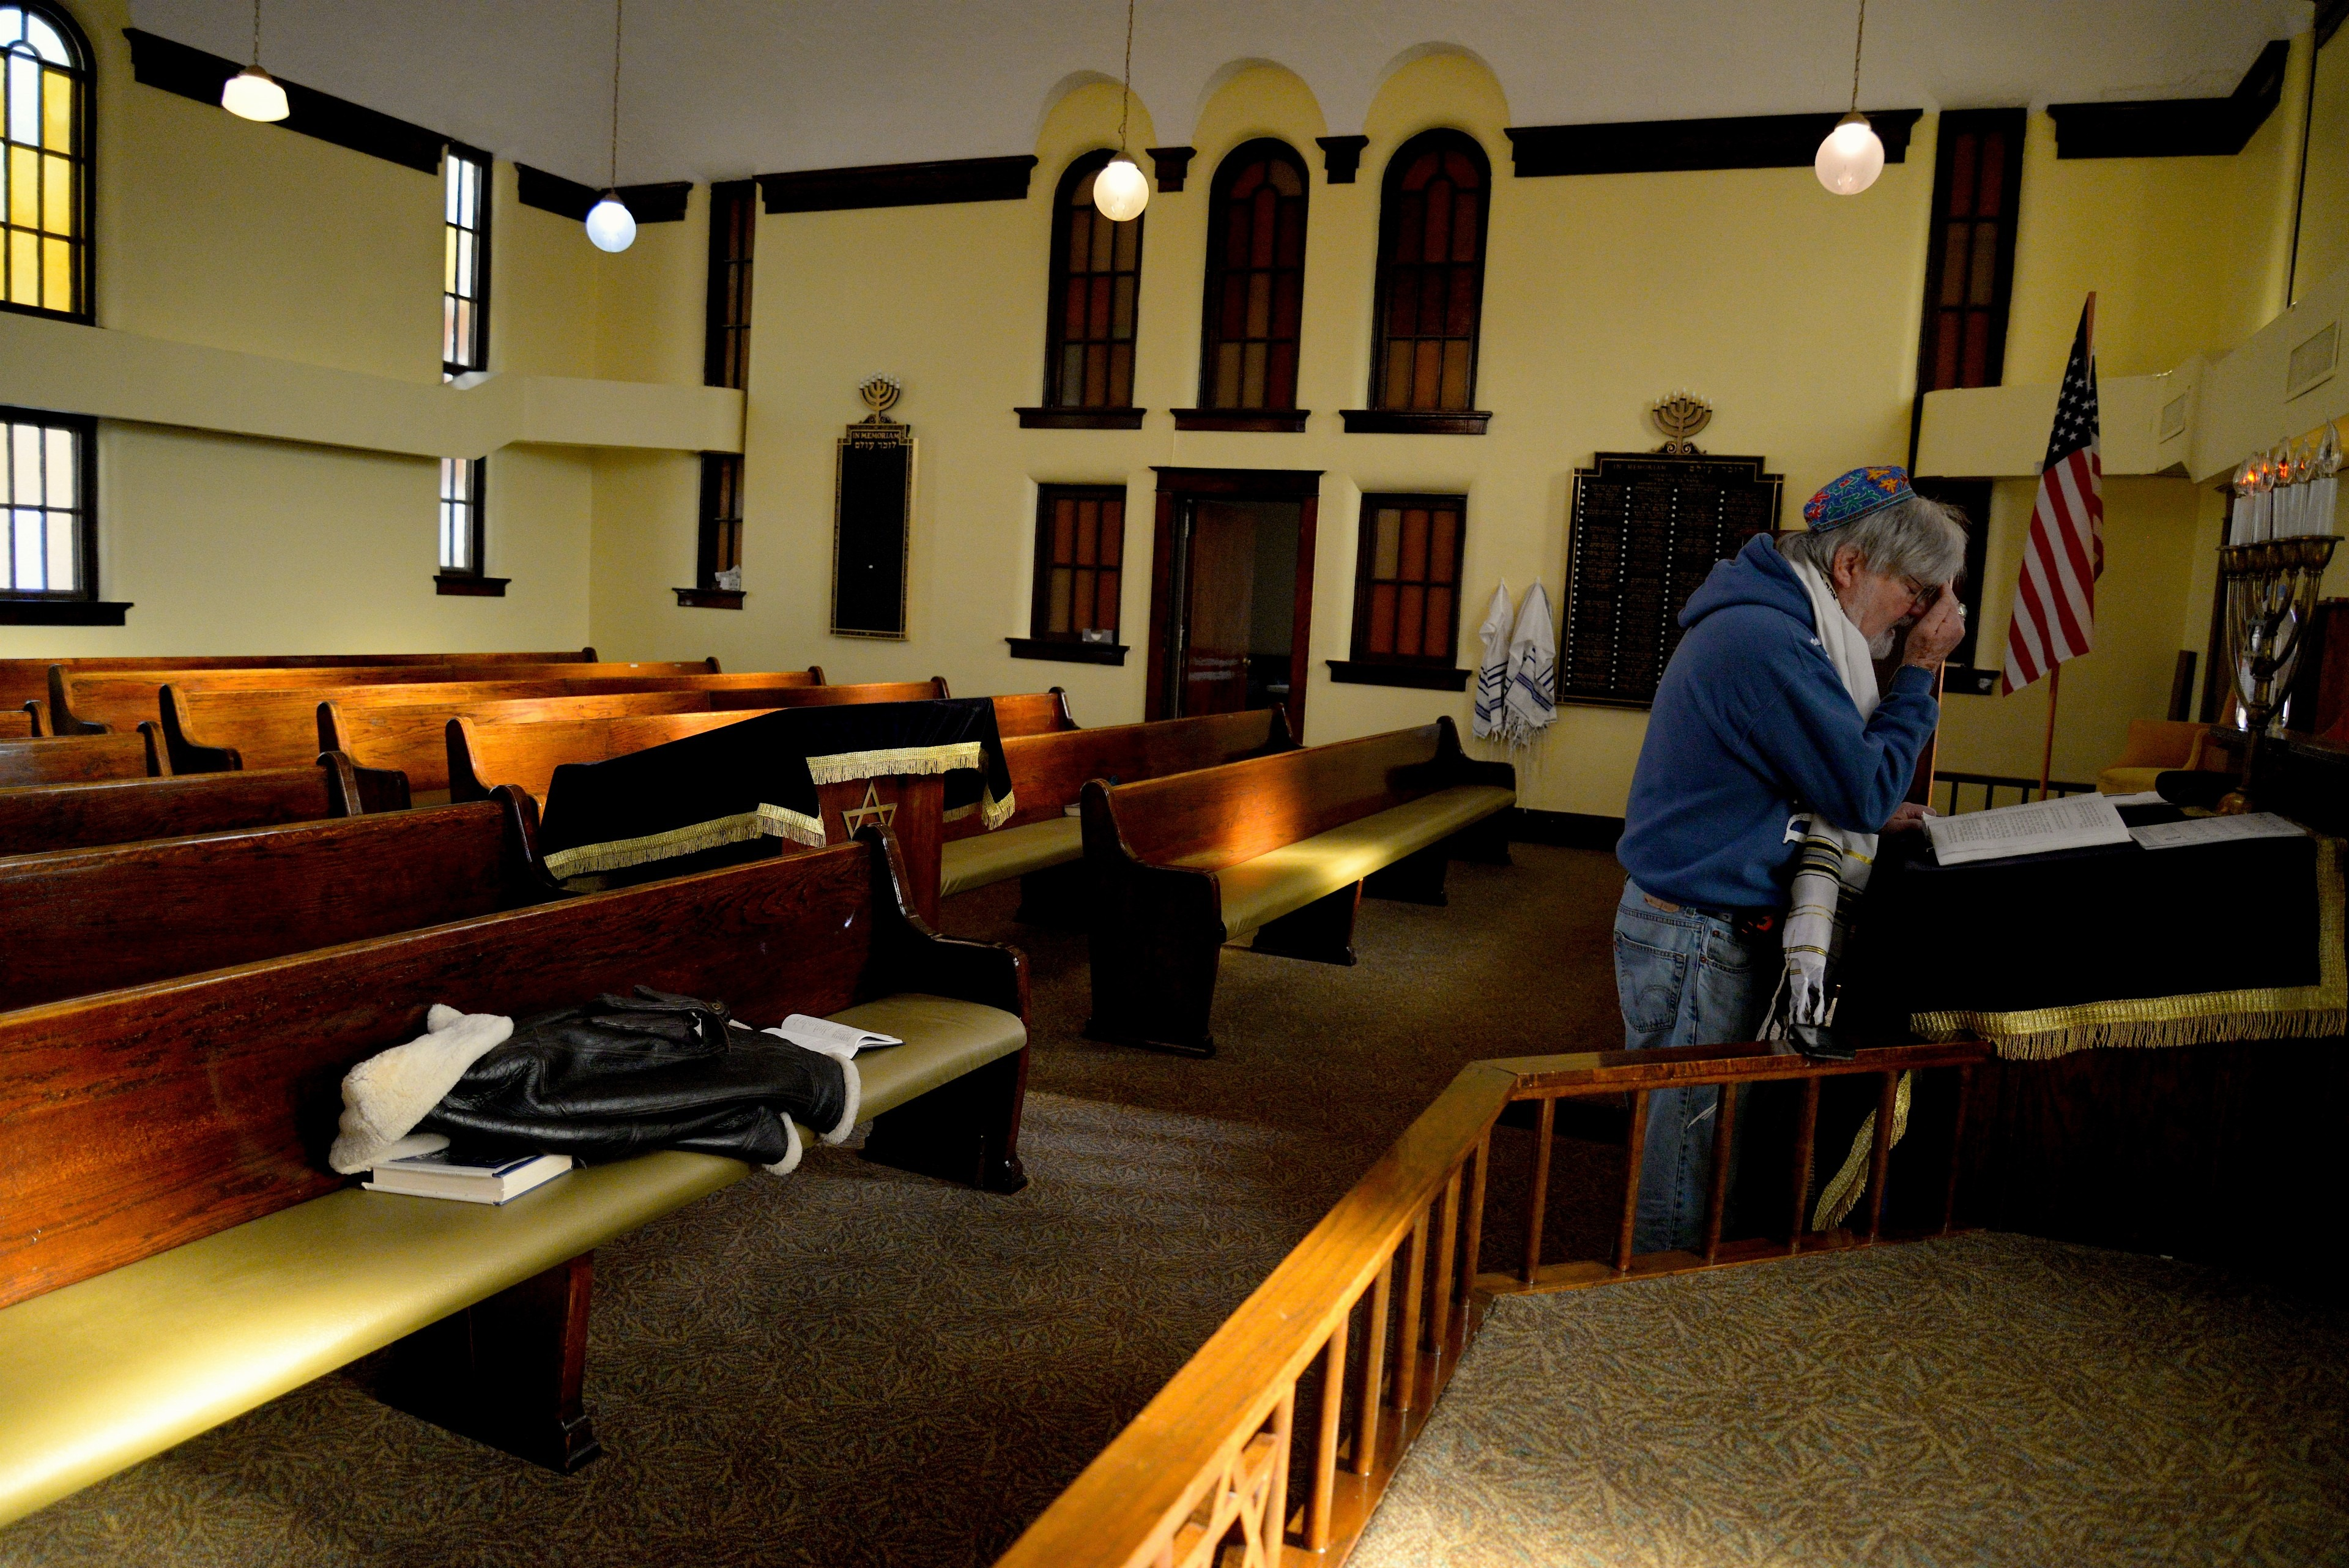 Jewish man prays at altar with pews behind him, USA flag in background